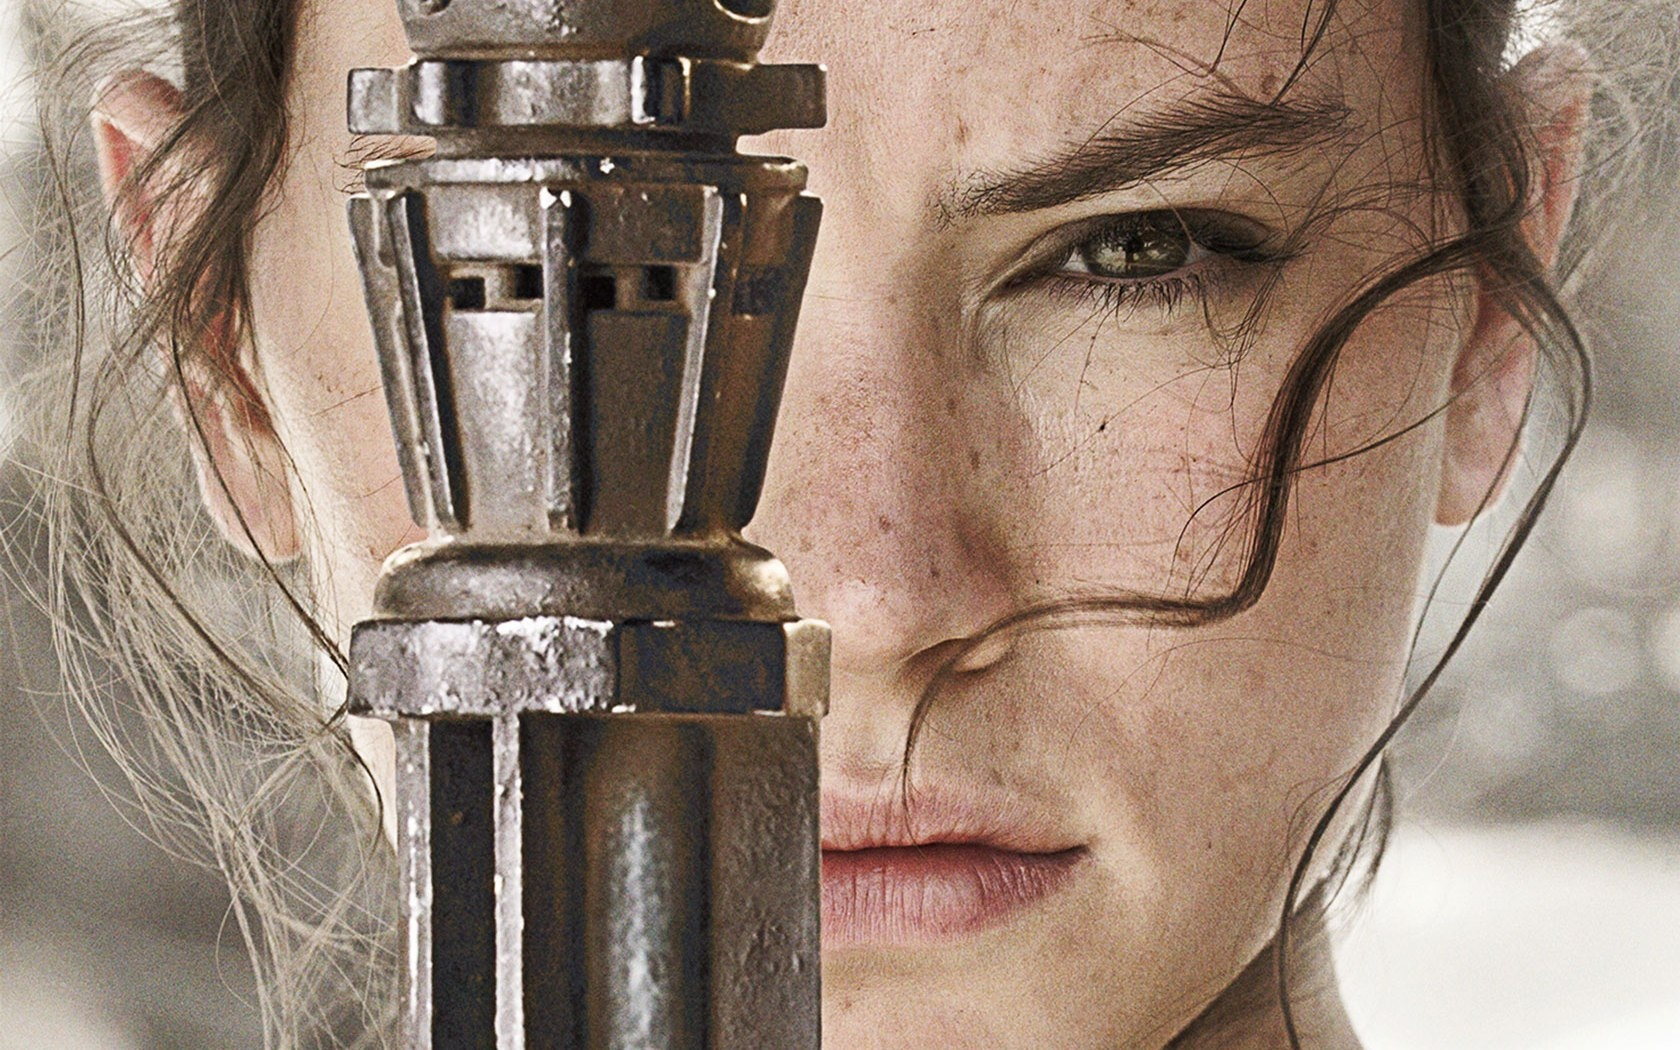 daisy_ridley_as_rey_star_wars_the_force_awakens-1680x1050